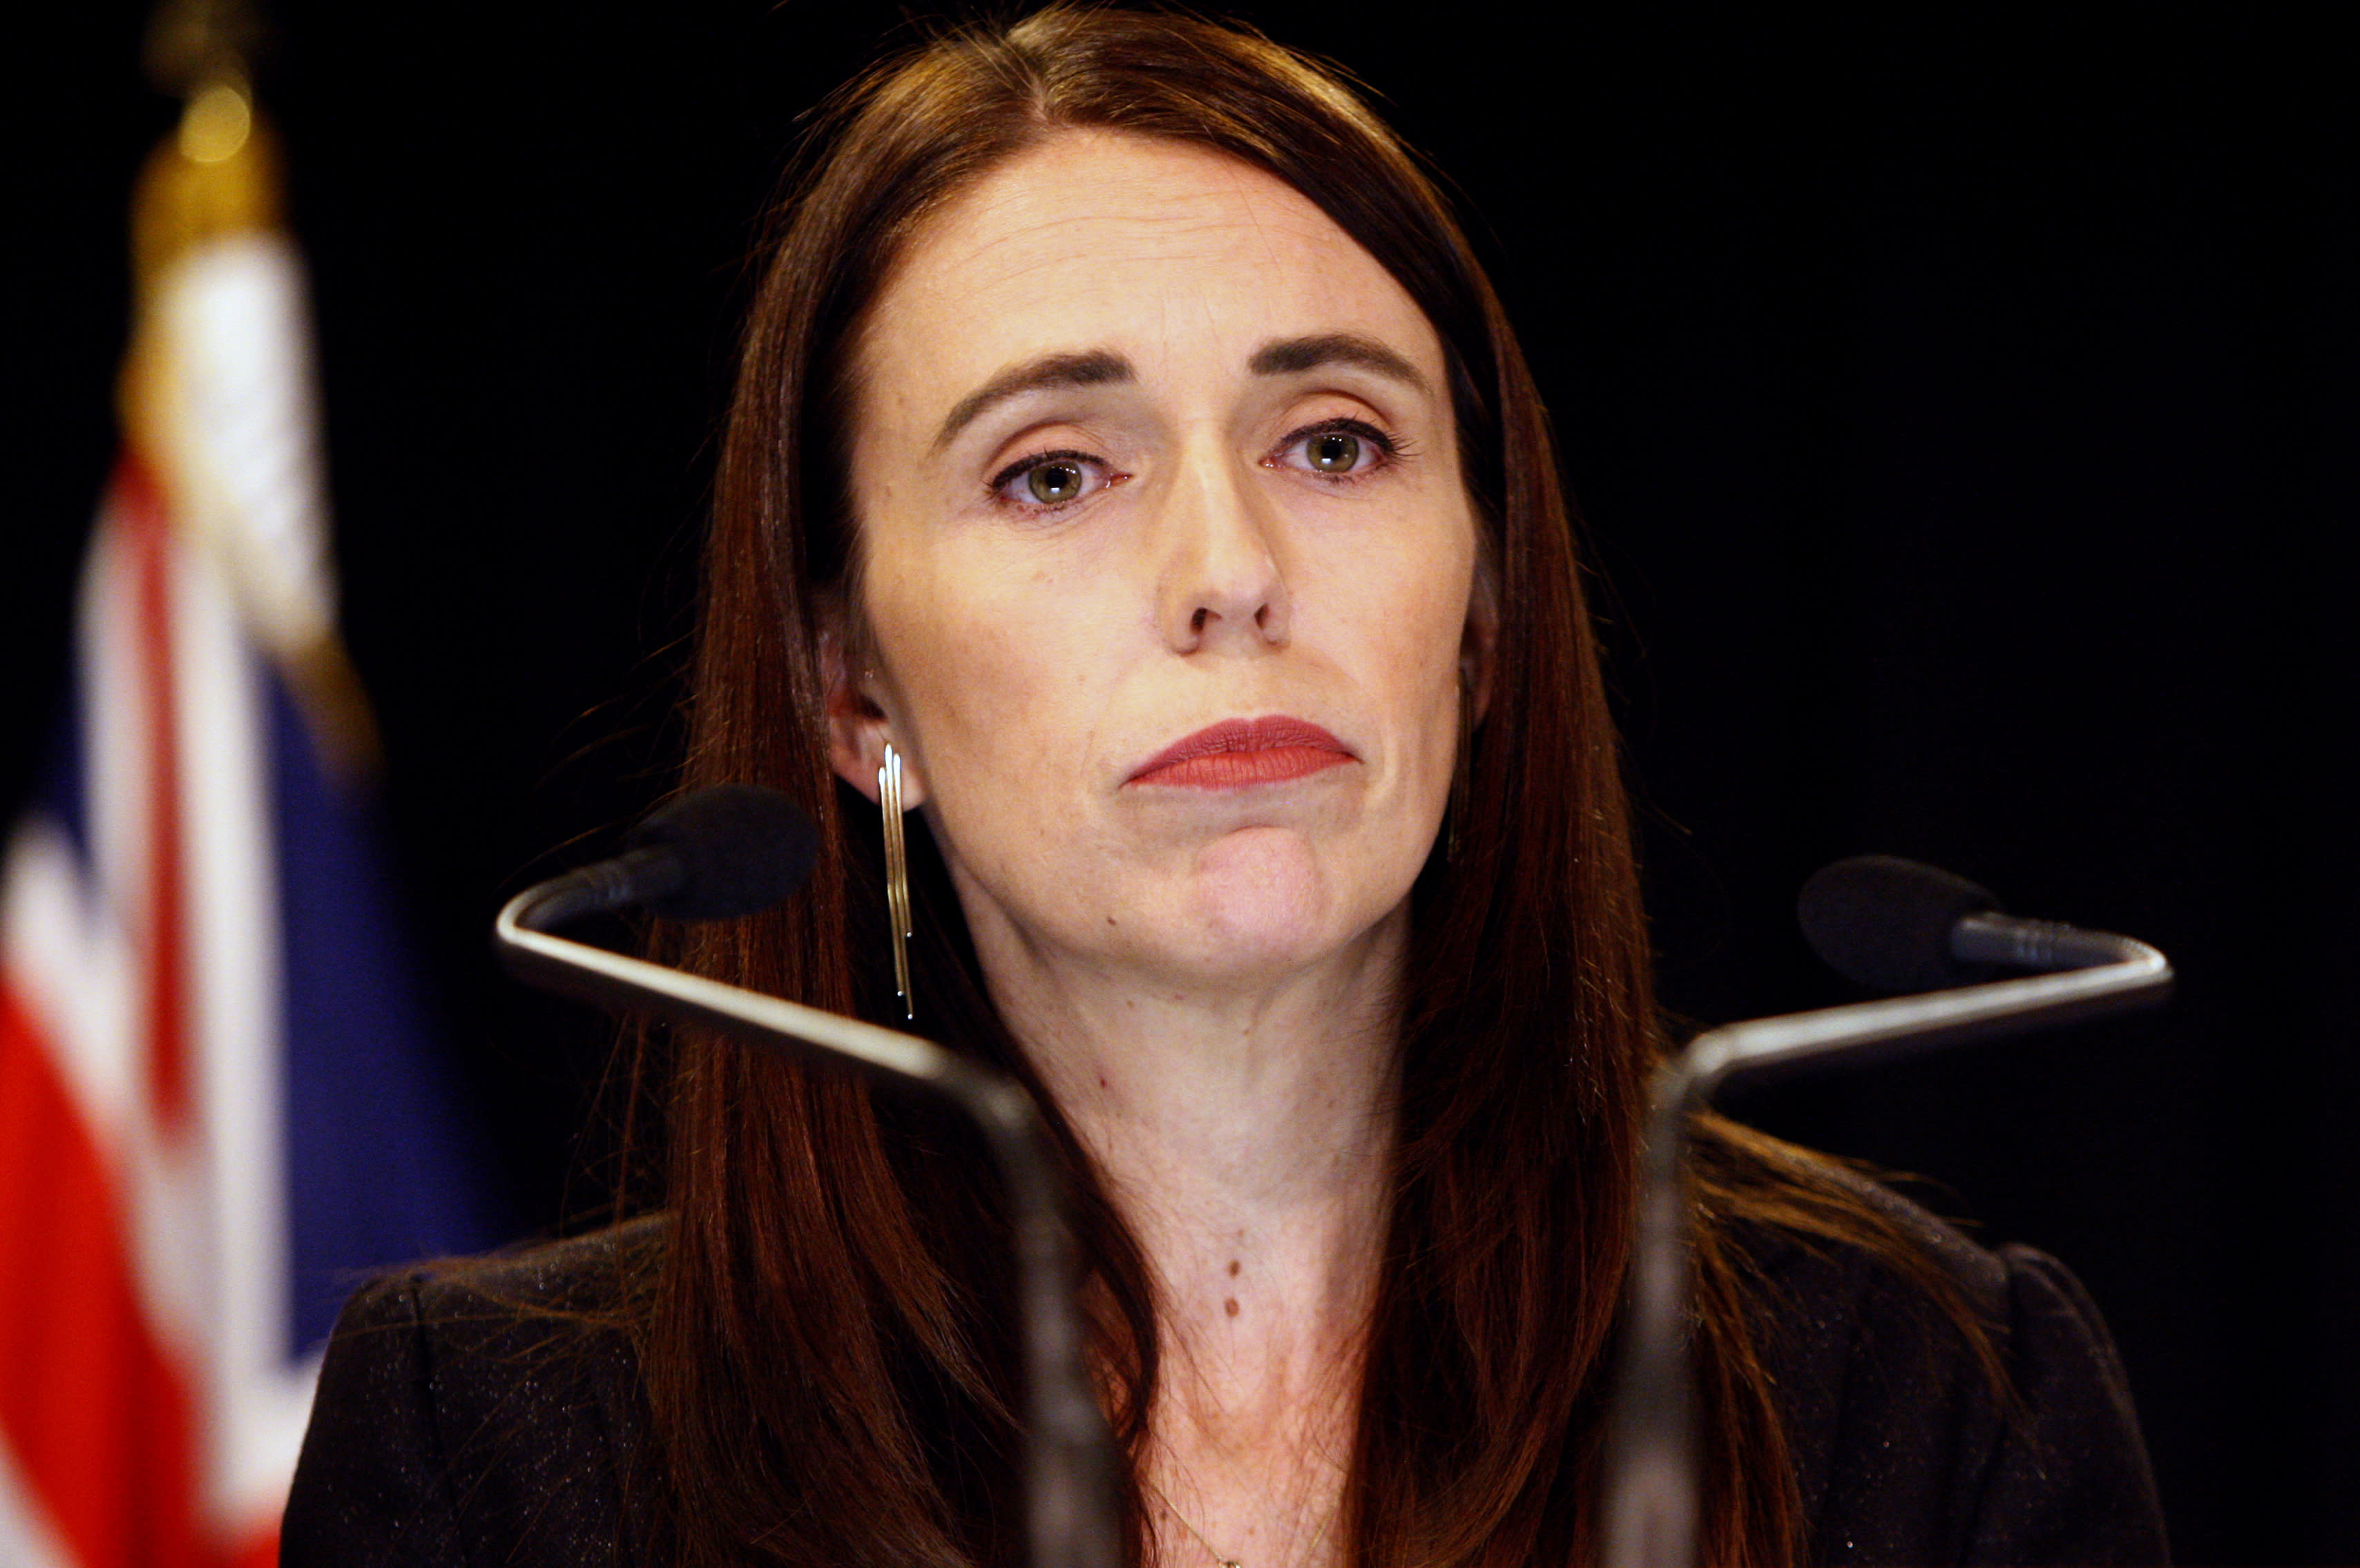 FILE - In this March 25, 2019, file photo, New Zealand Prime Minister Jacinda Ardern addresses a press conference in Wellington, New Zealand. Ardern has named a Supreme Court justice to head New Zealand's top-level investigation into the actions of security agencies and other issues related to the mosque shootings. (AP Photo/Nick Perry, File)